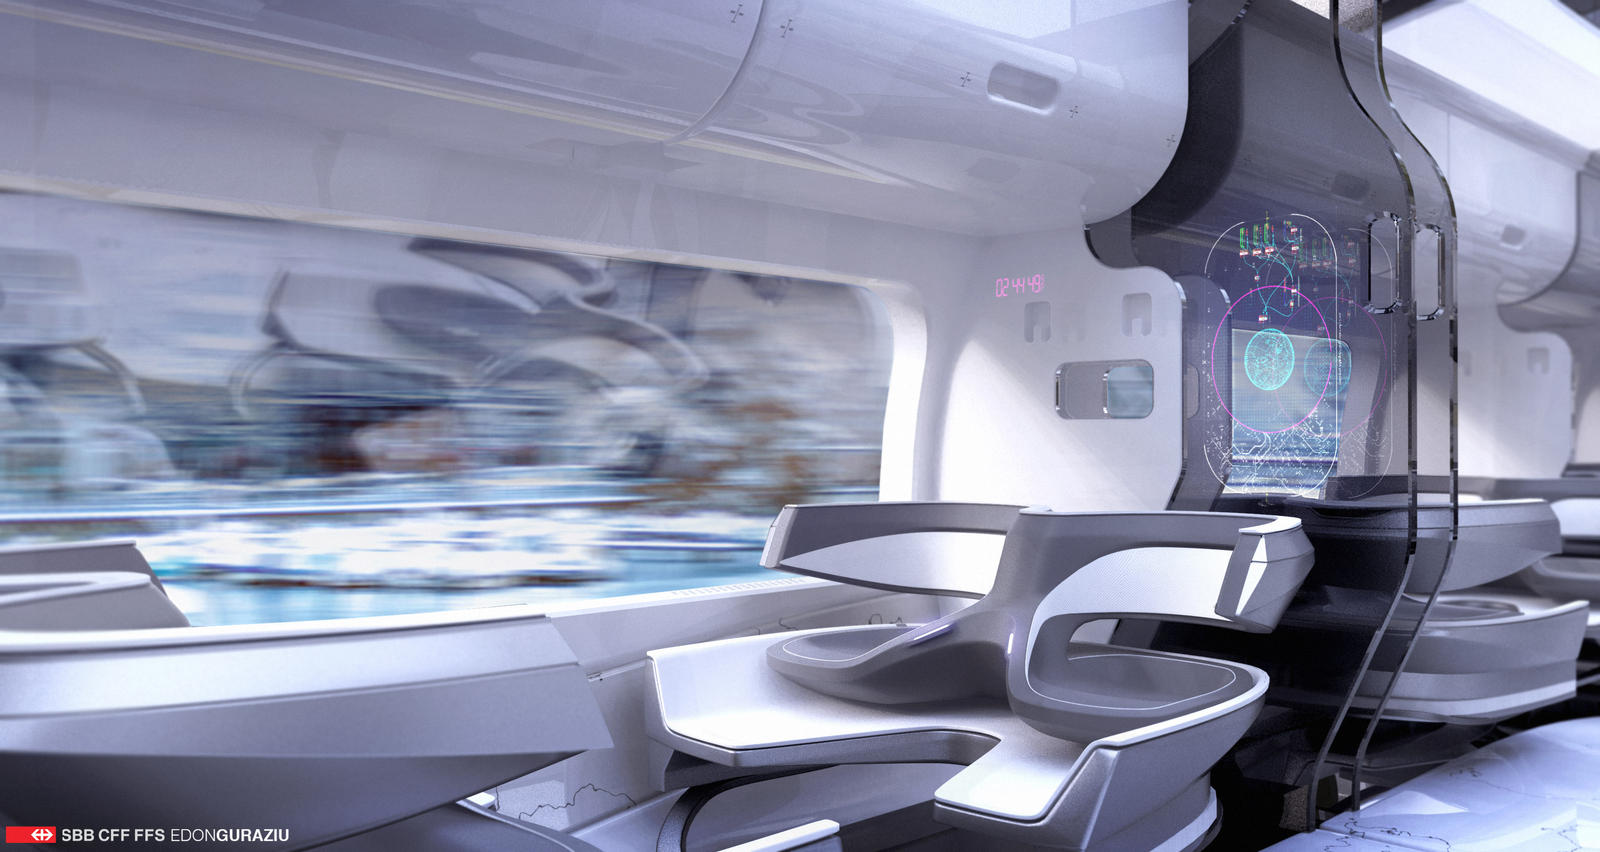 Futuristic Train Interior Design by EdonGuraziu on DeviantArt